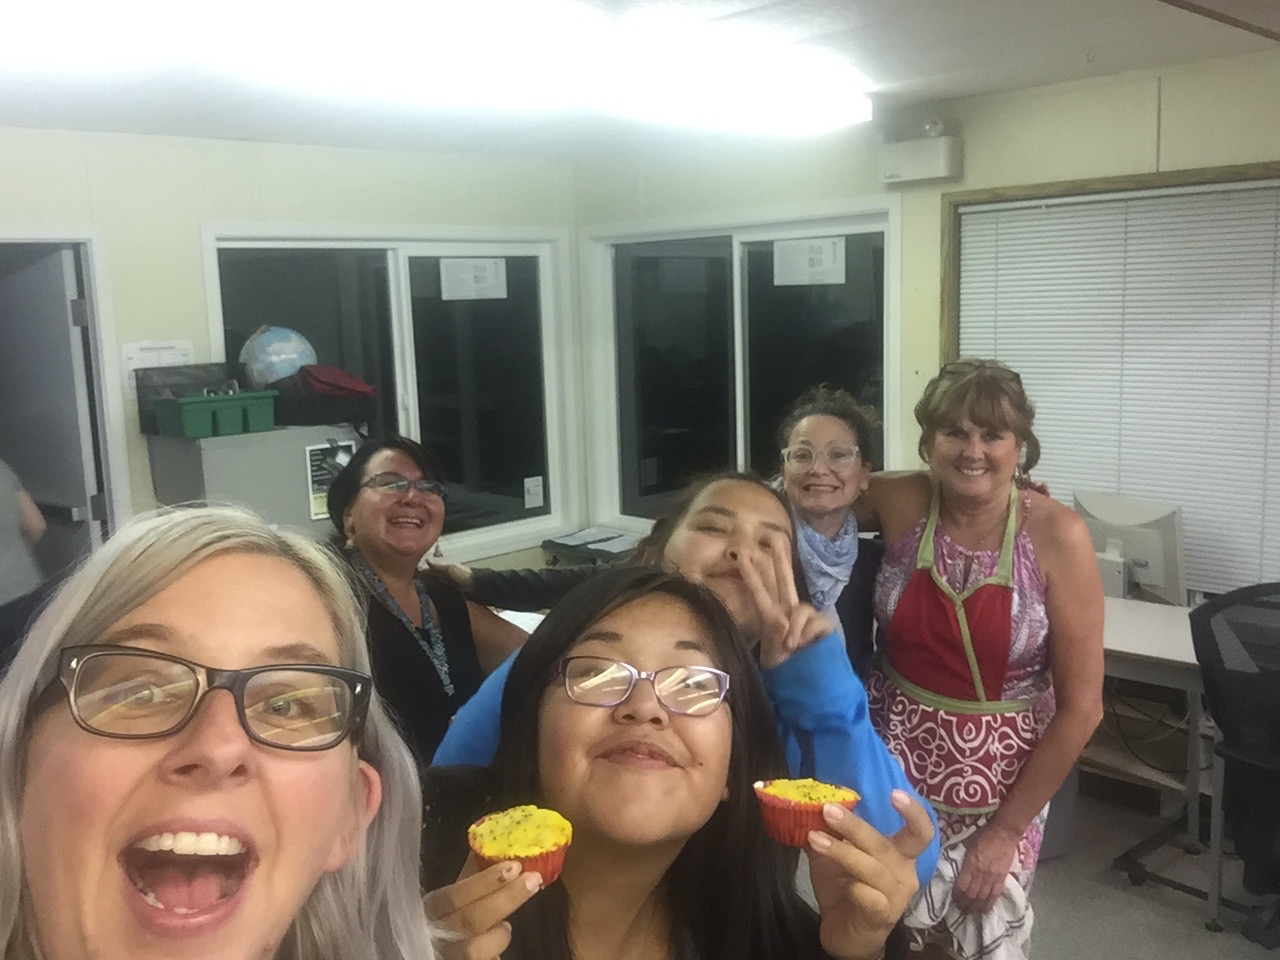 Another happy selfie: Lisa g, Leah, Roberta, Kelly, Odessa and Debbie (the chef)